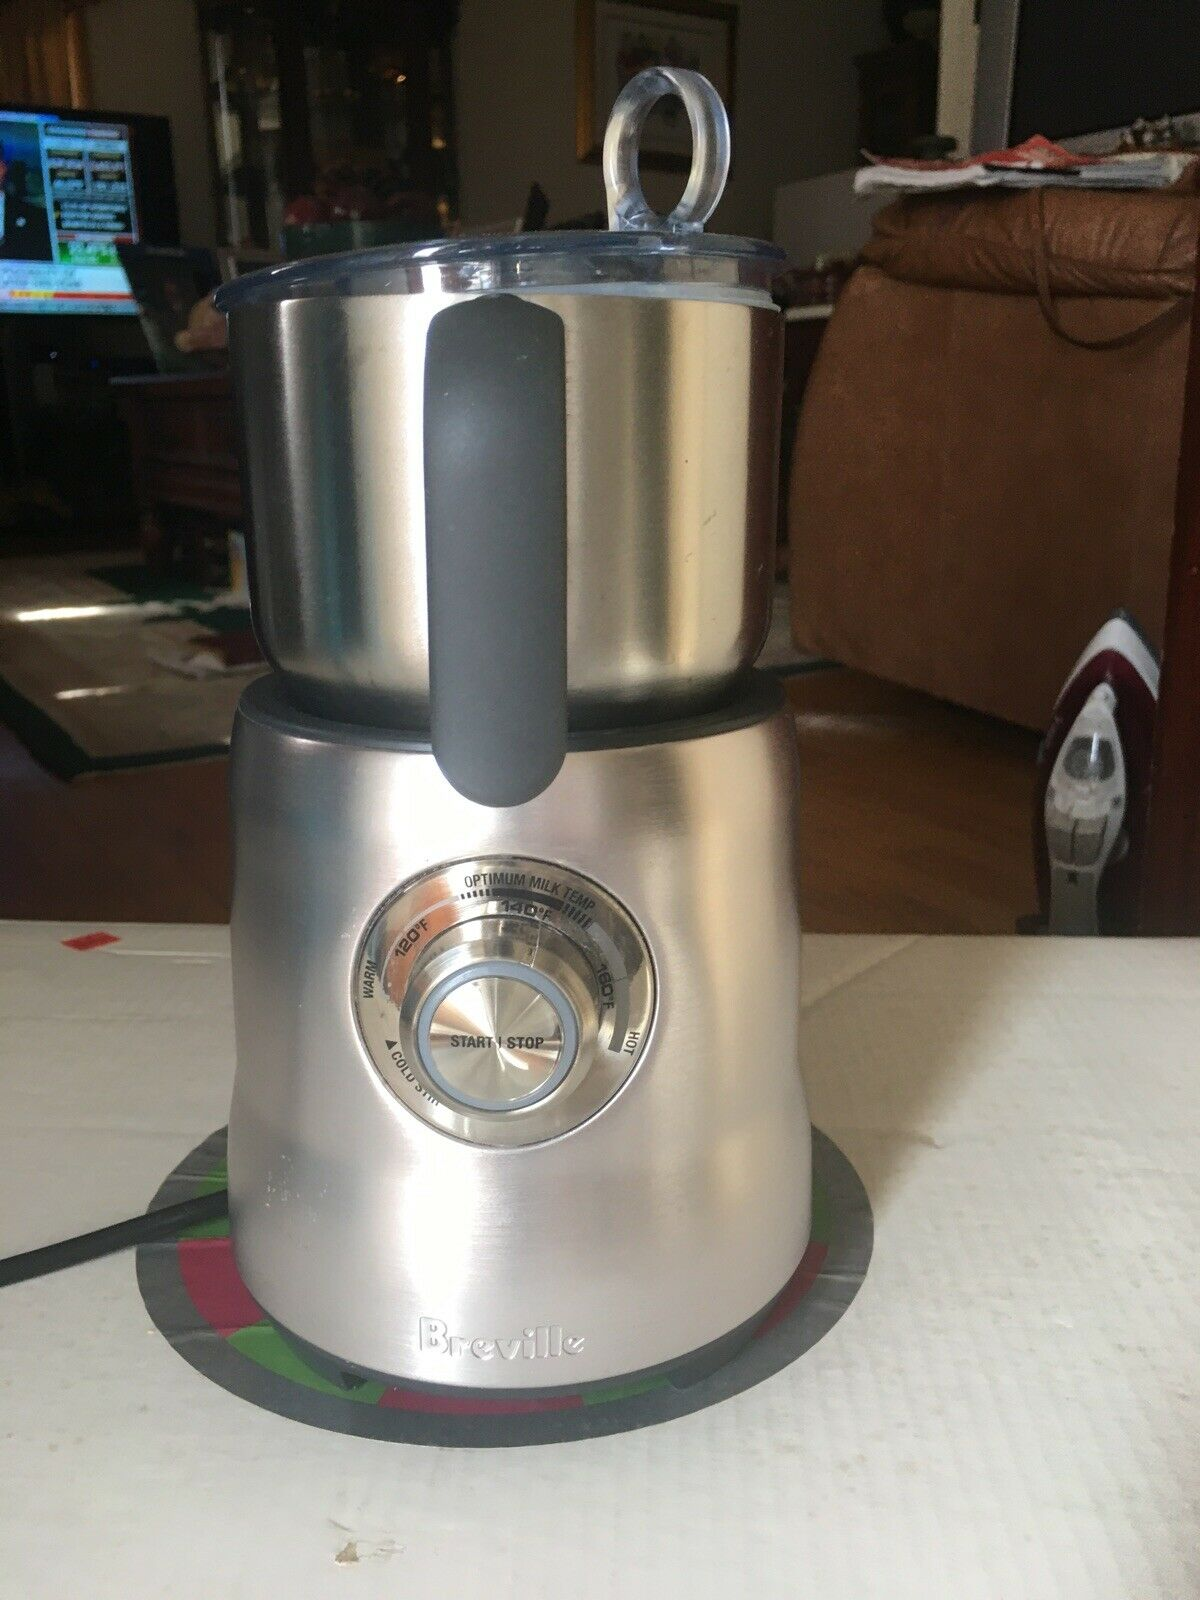 BMF600XL Milk Cafe Milk Frother